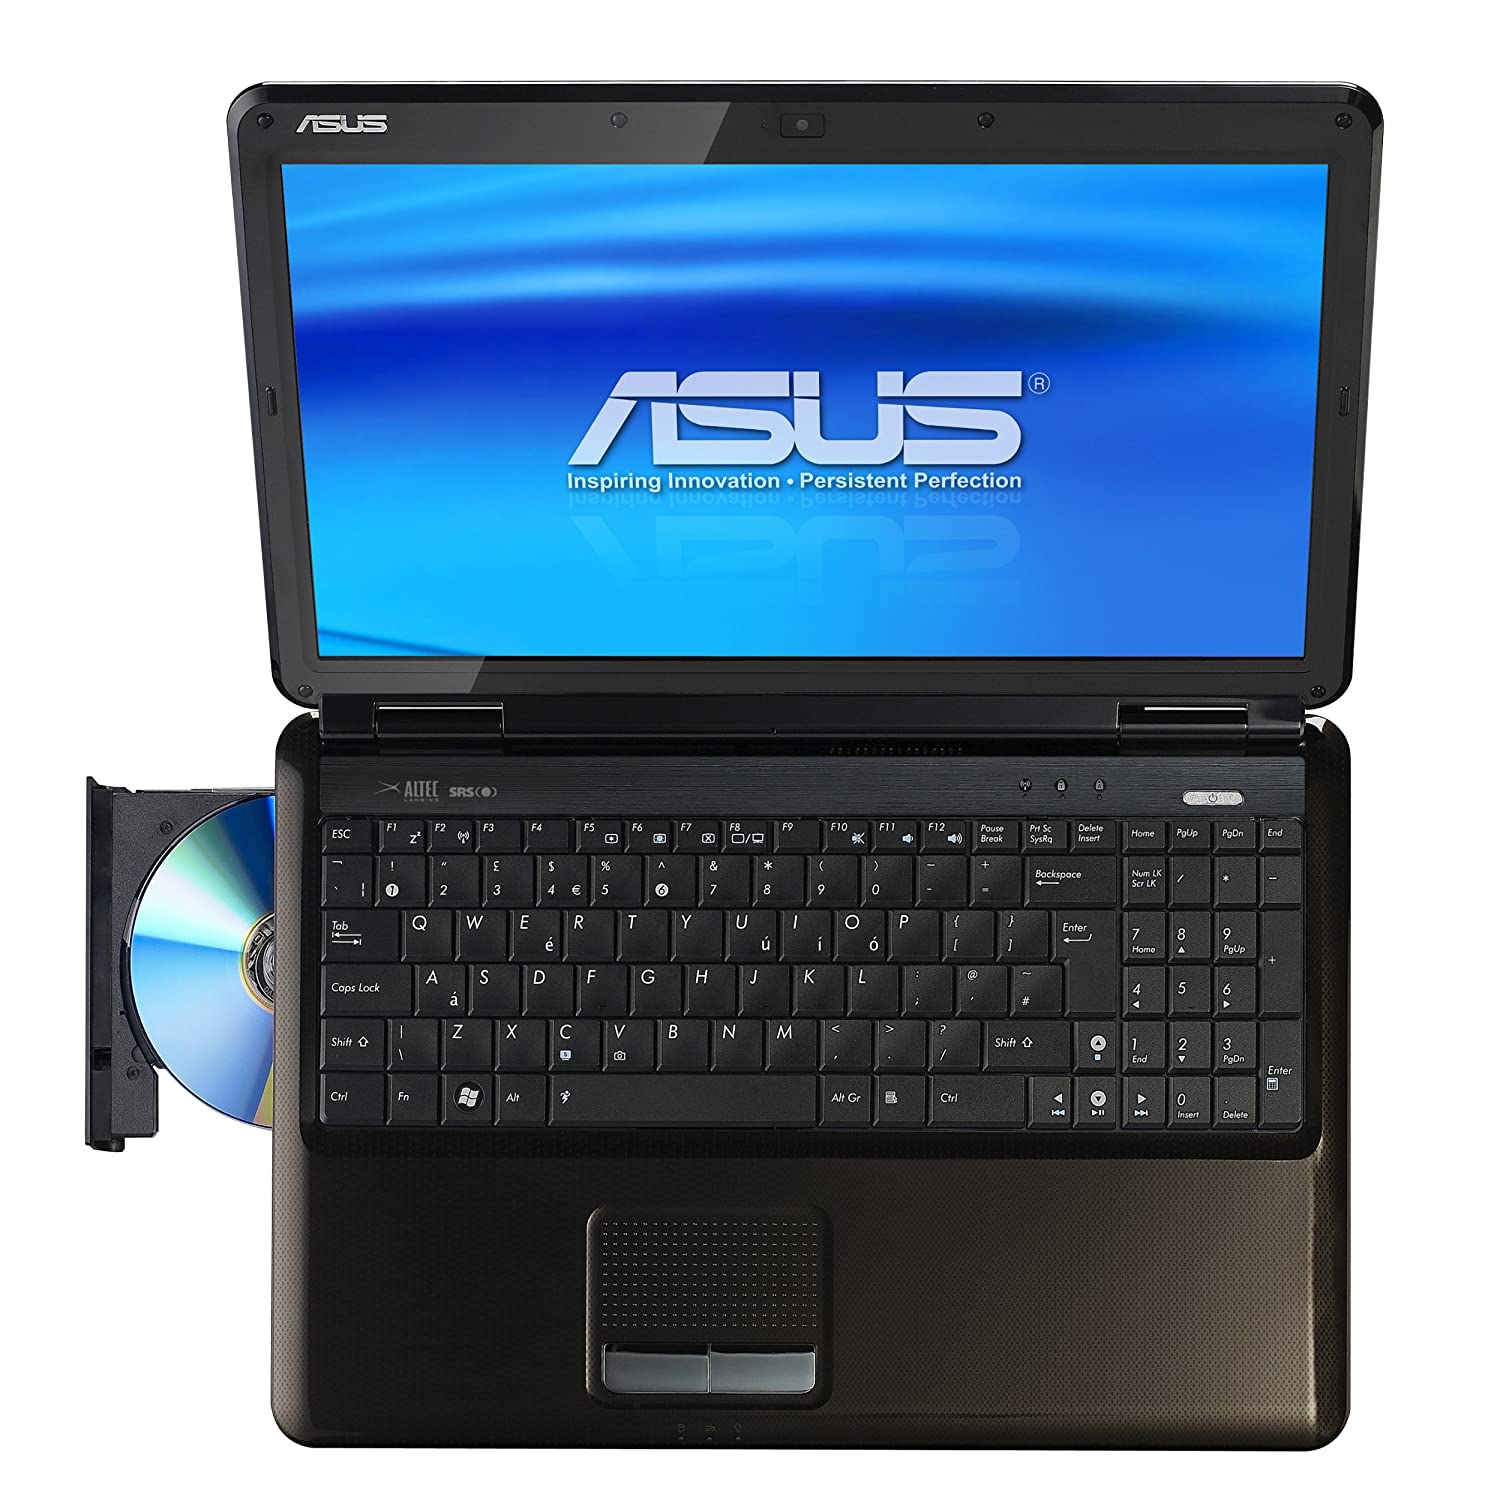 4290238d510 Amazon.com: Asus K50IJ-C1 15.6 Inch Laptop - Black: Computers & Accessories